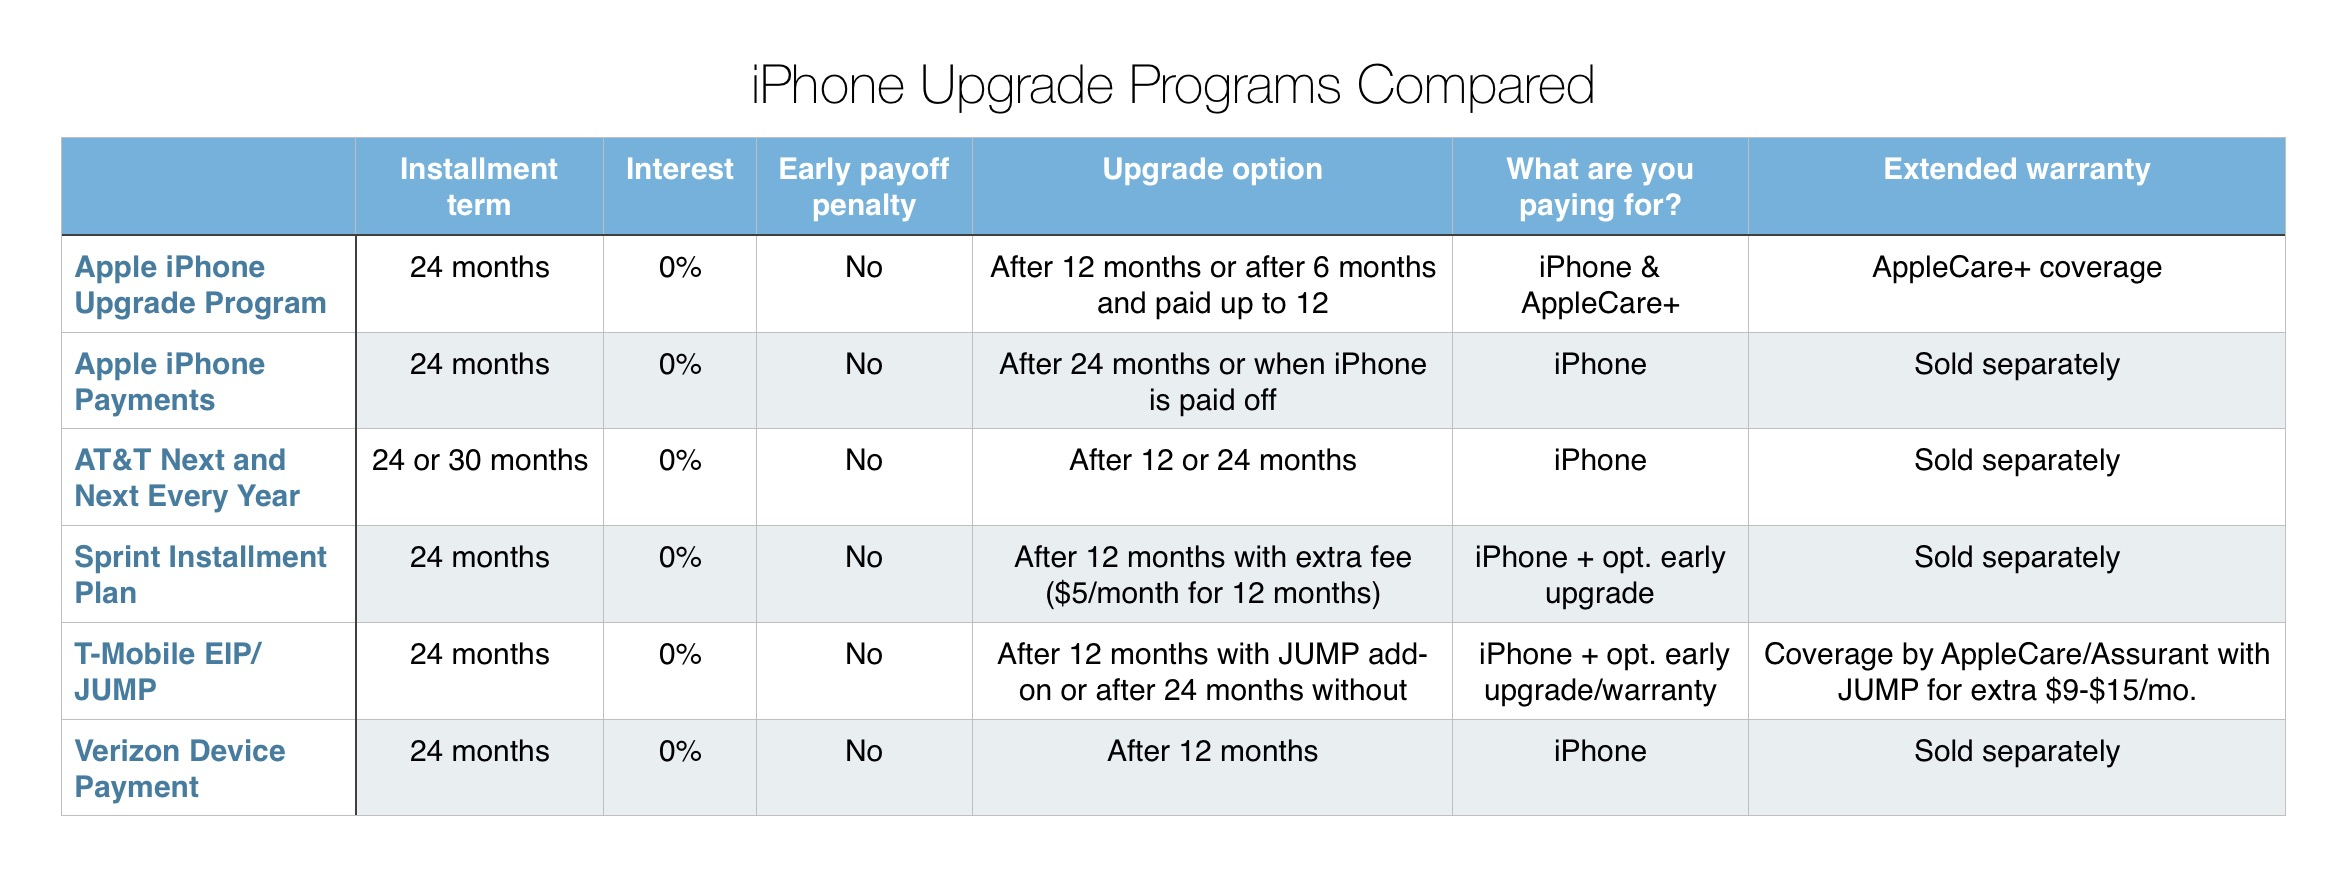 Which iPhone upgrade program is the best? - 9to5Mac